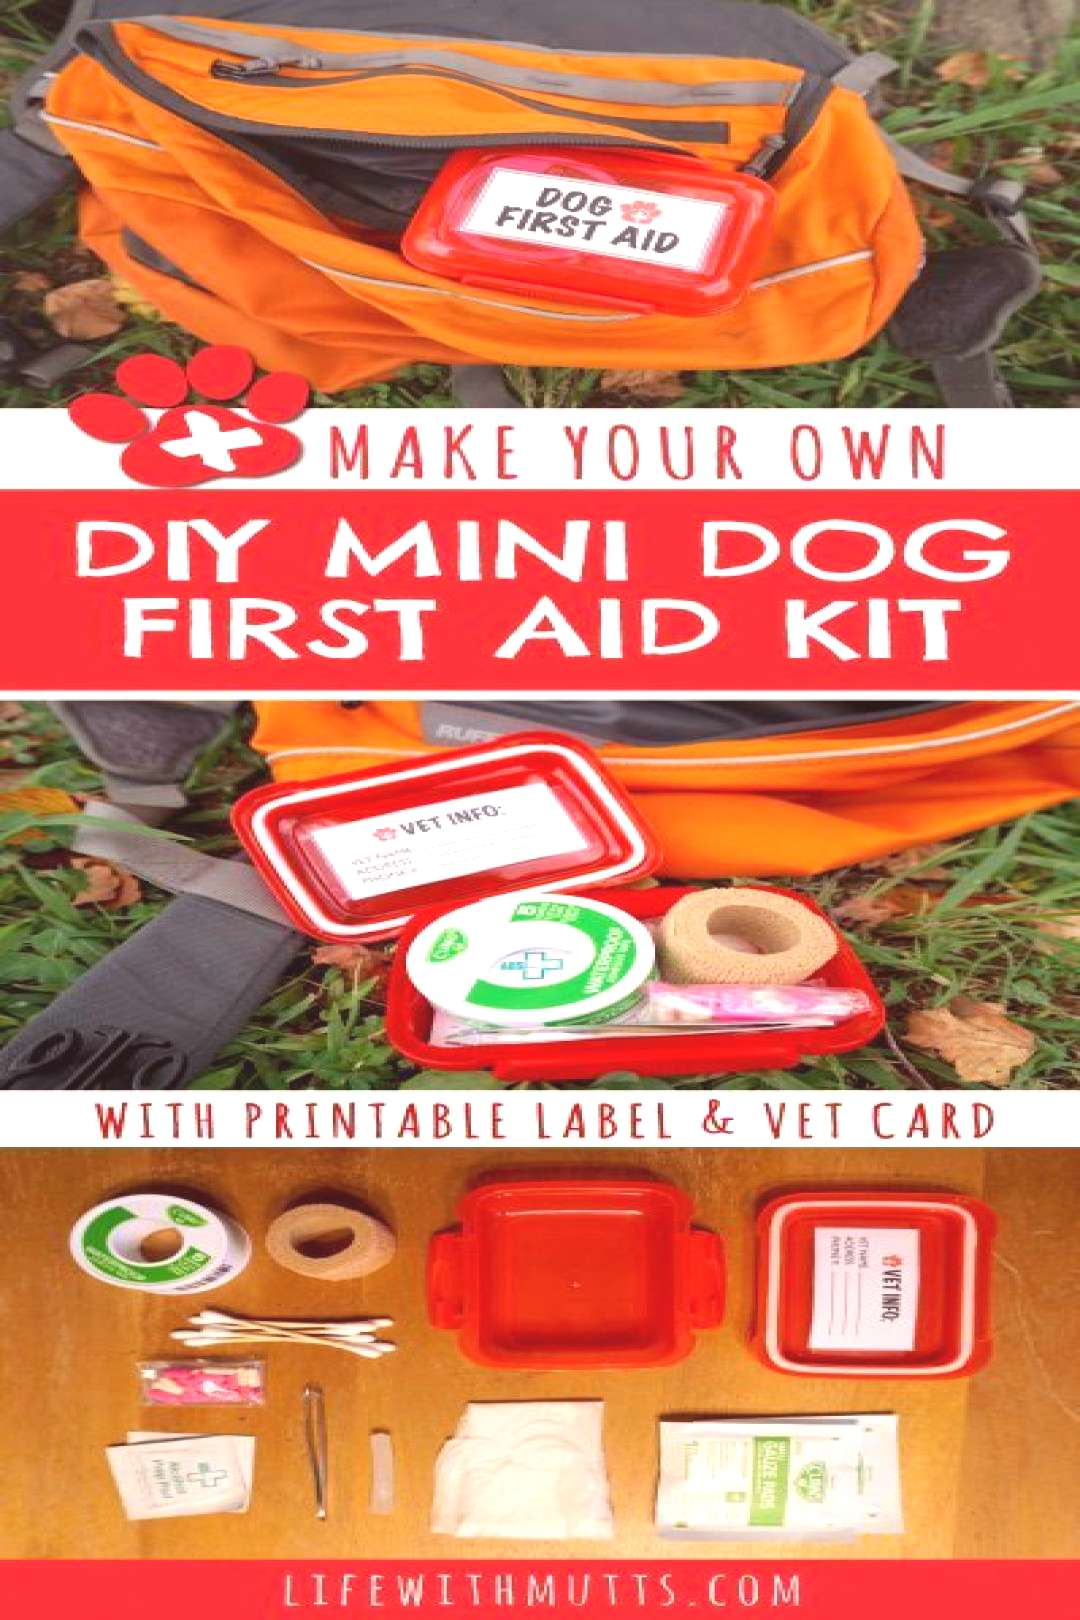 You don't want to lug around a full size first aid kit, but want to be ready in case your dog gets